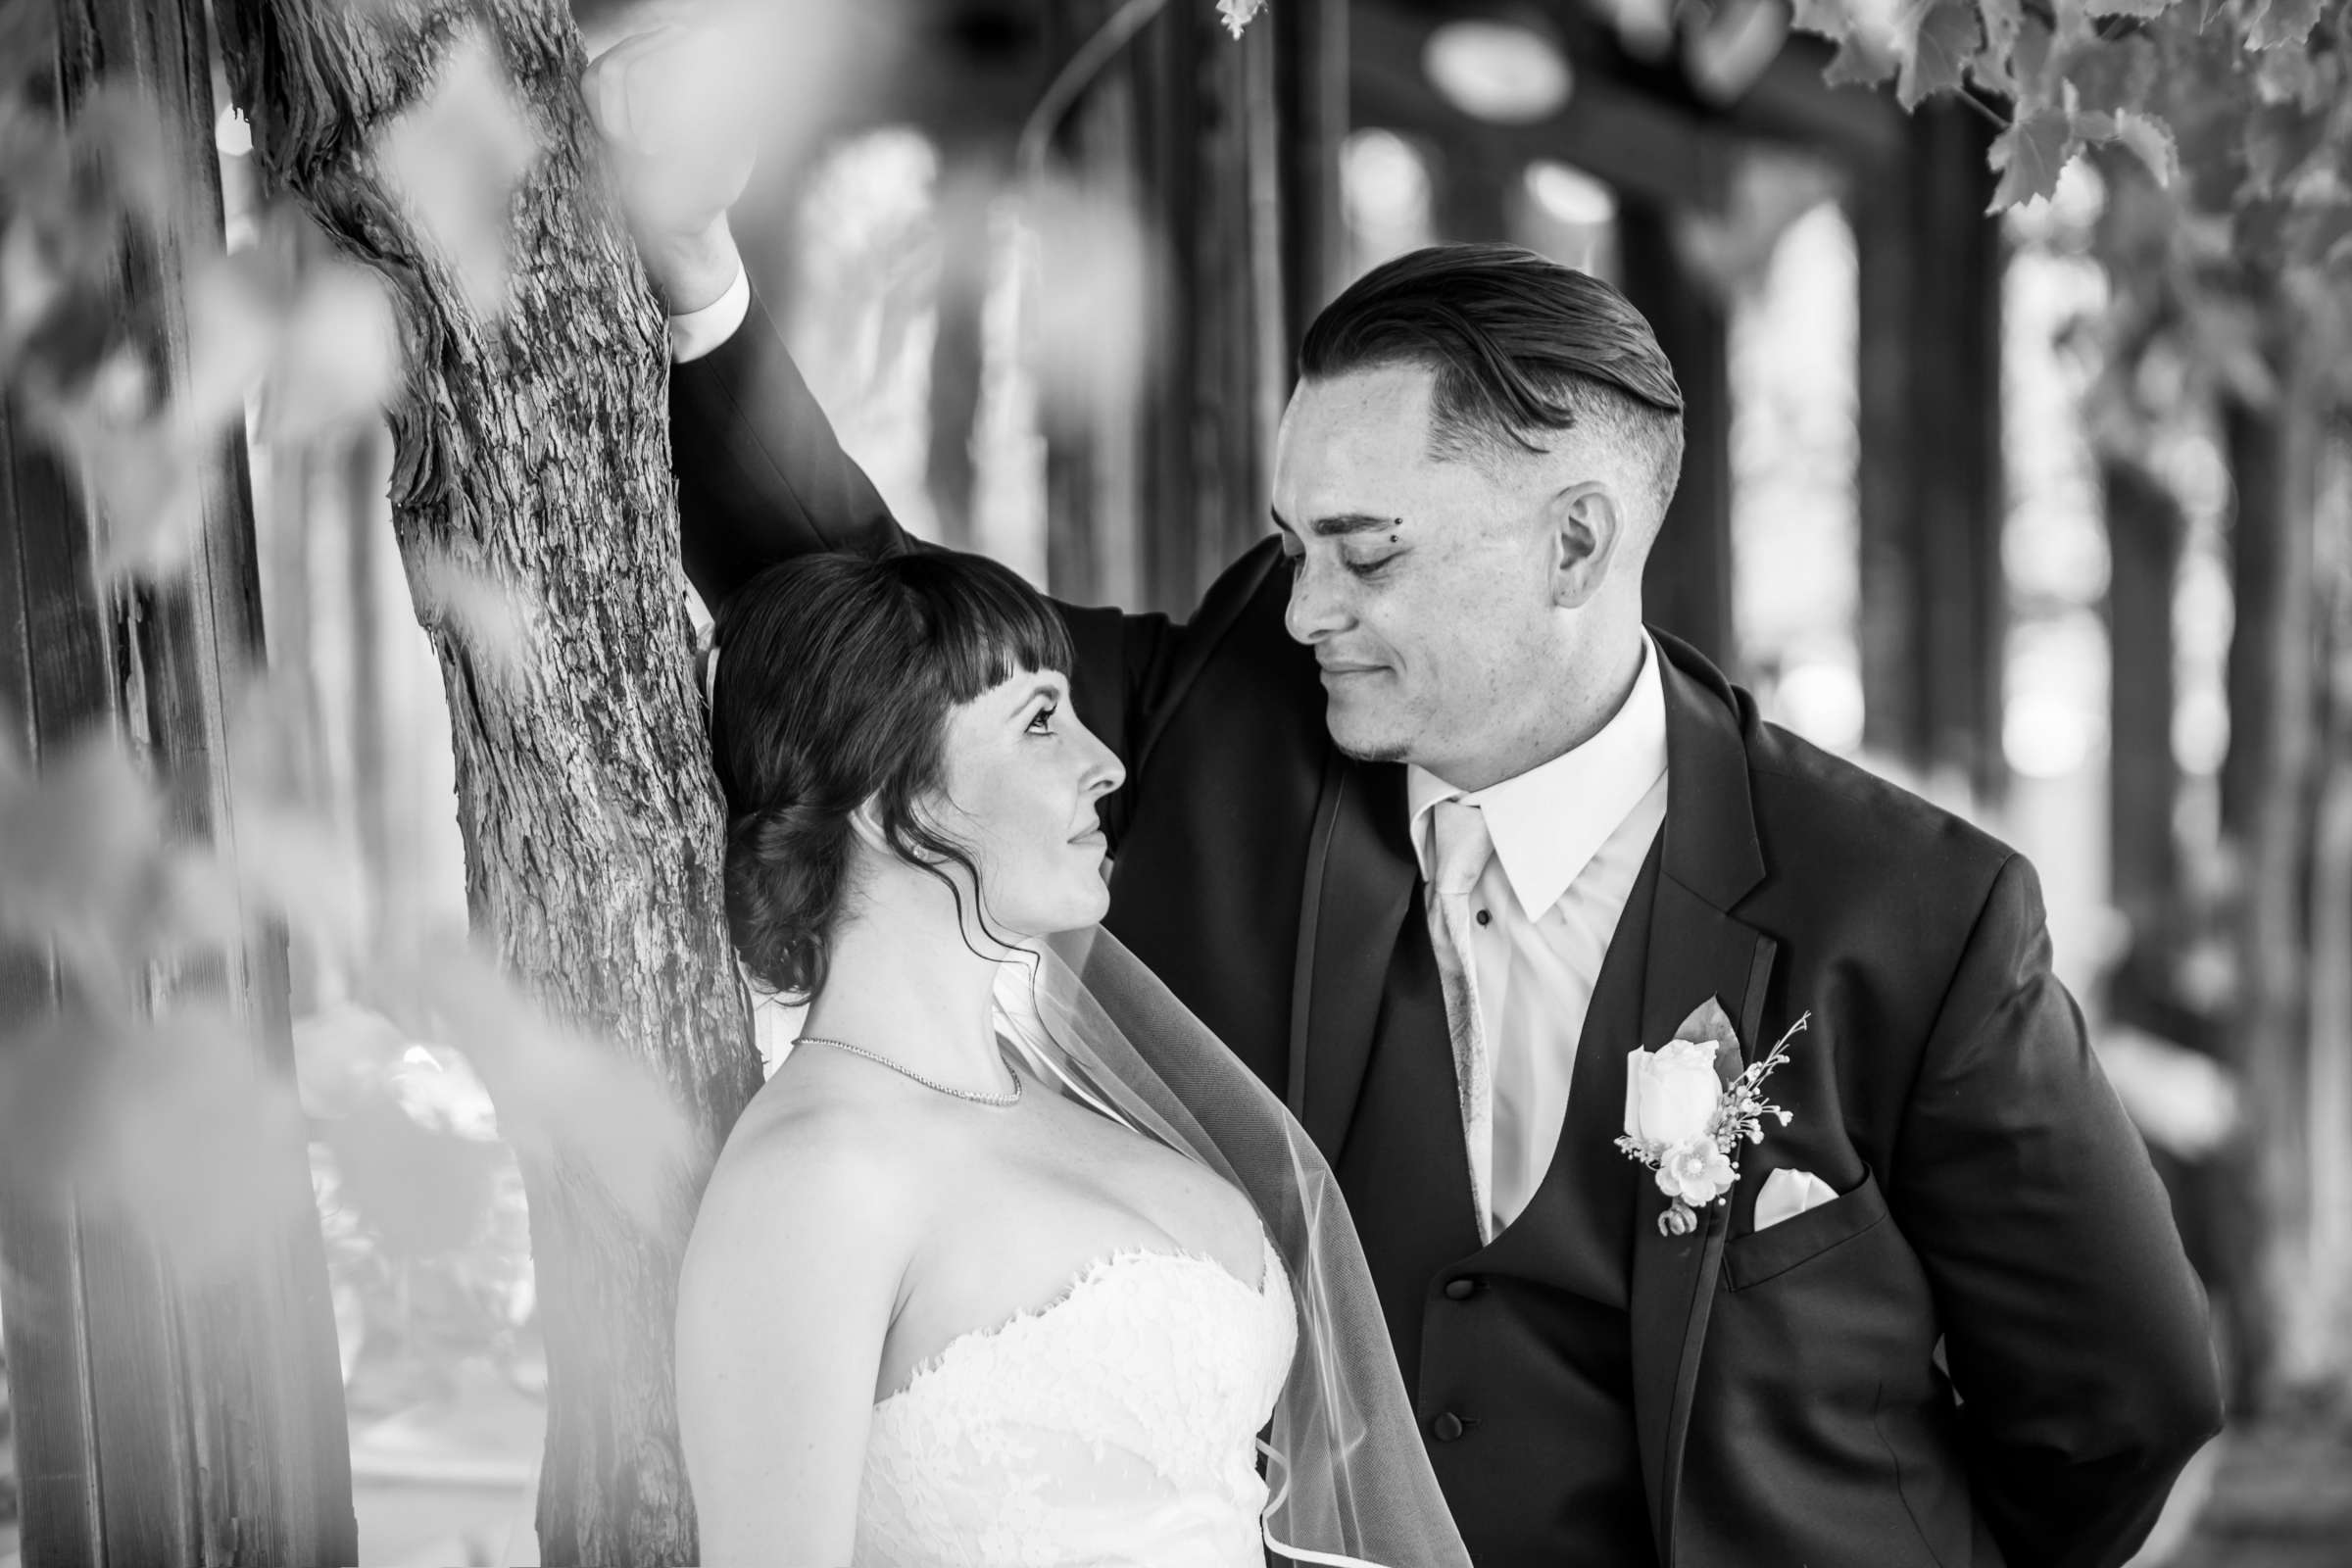 Orfila Vineyards Wedding, Tulasi and Richard Wedding Photo #2 by True Photography